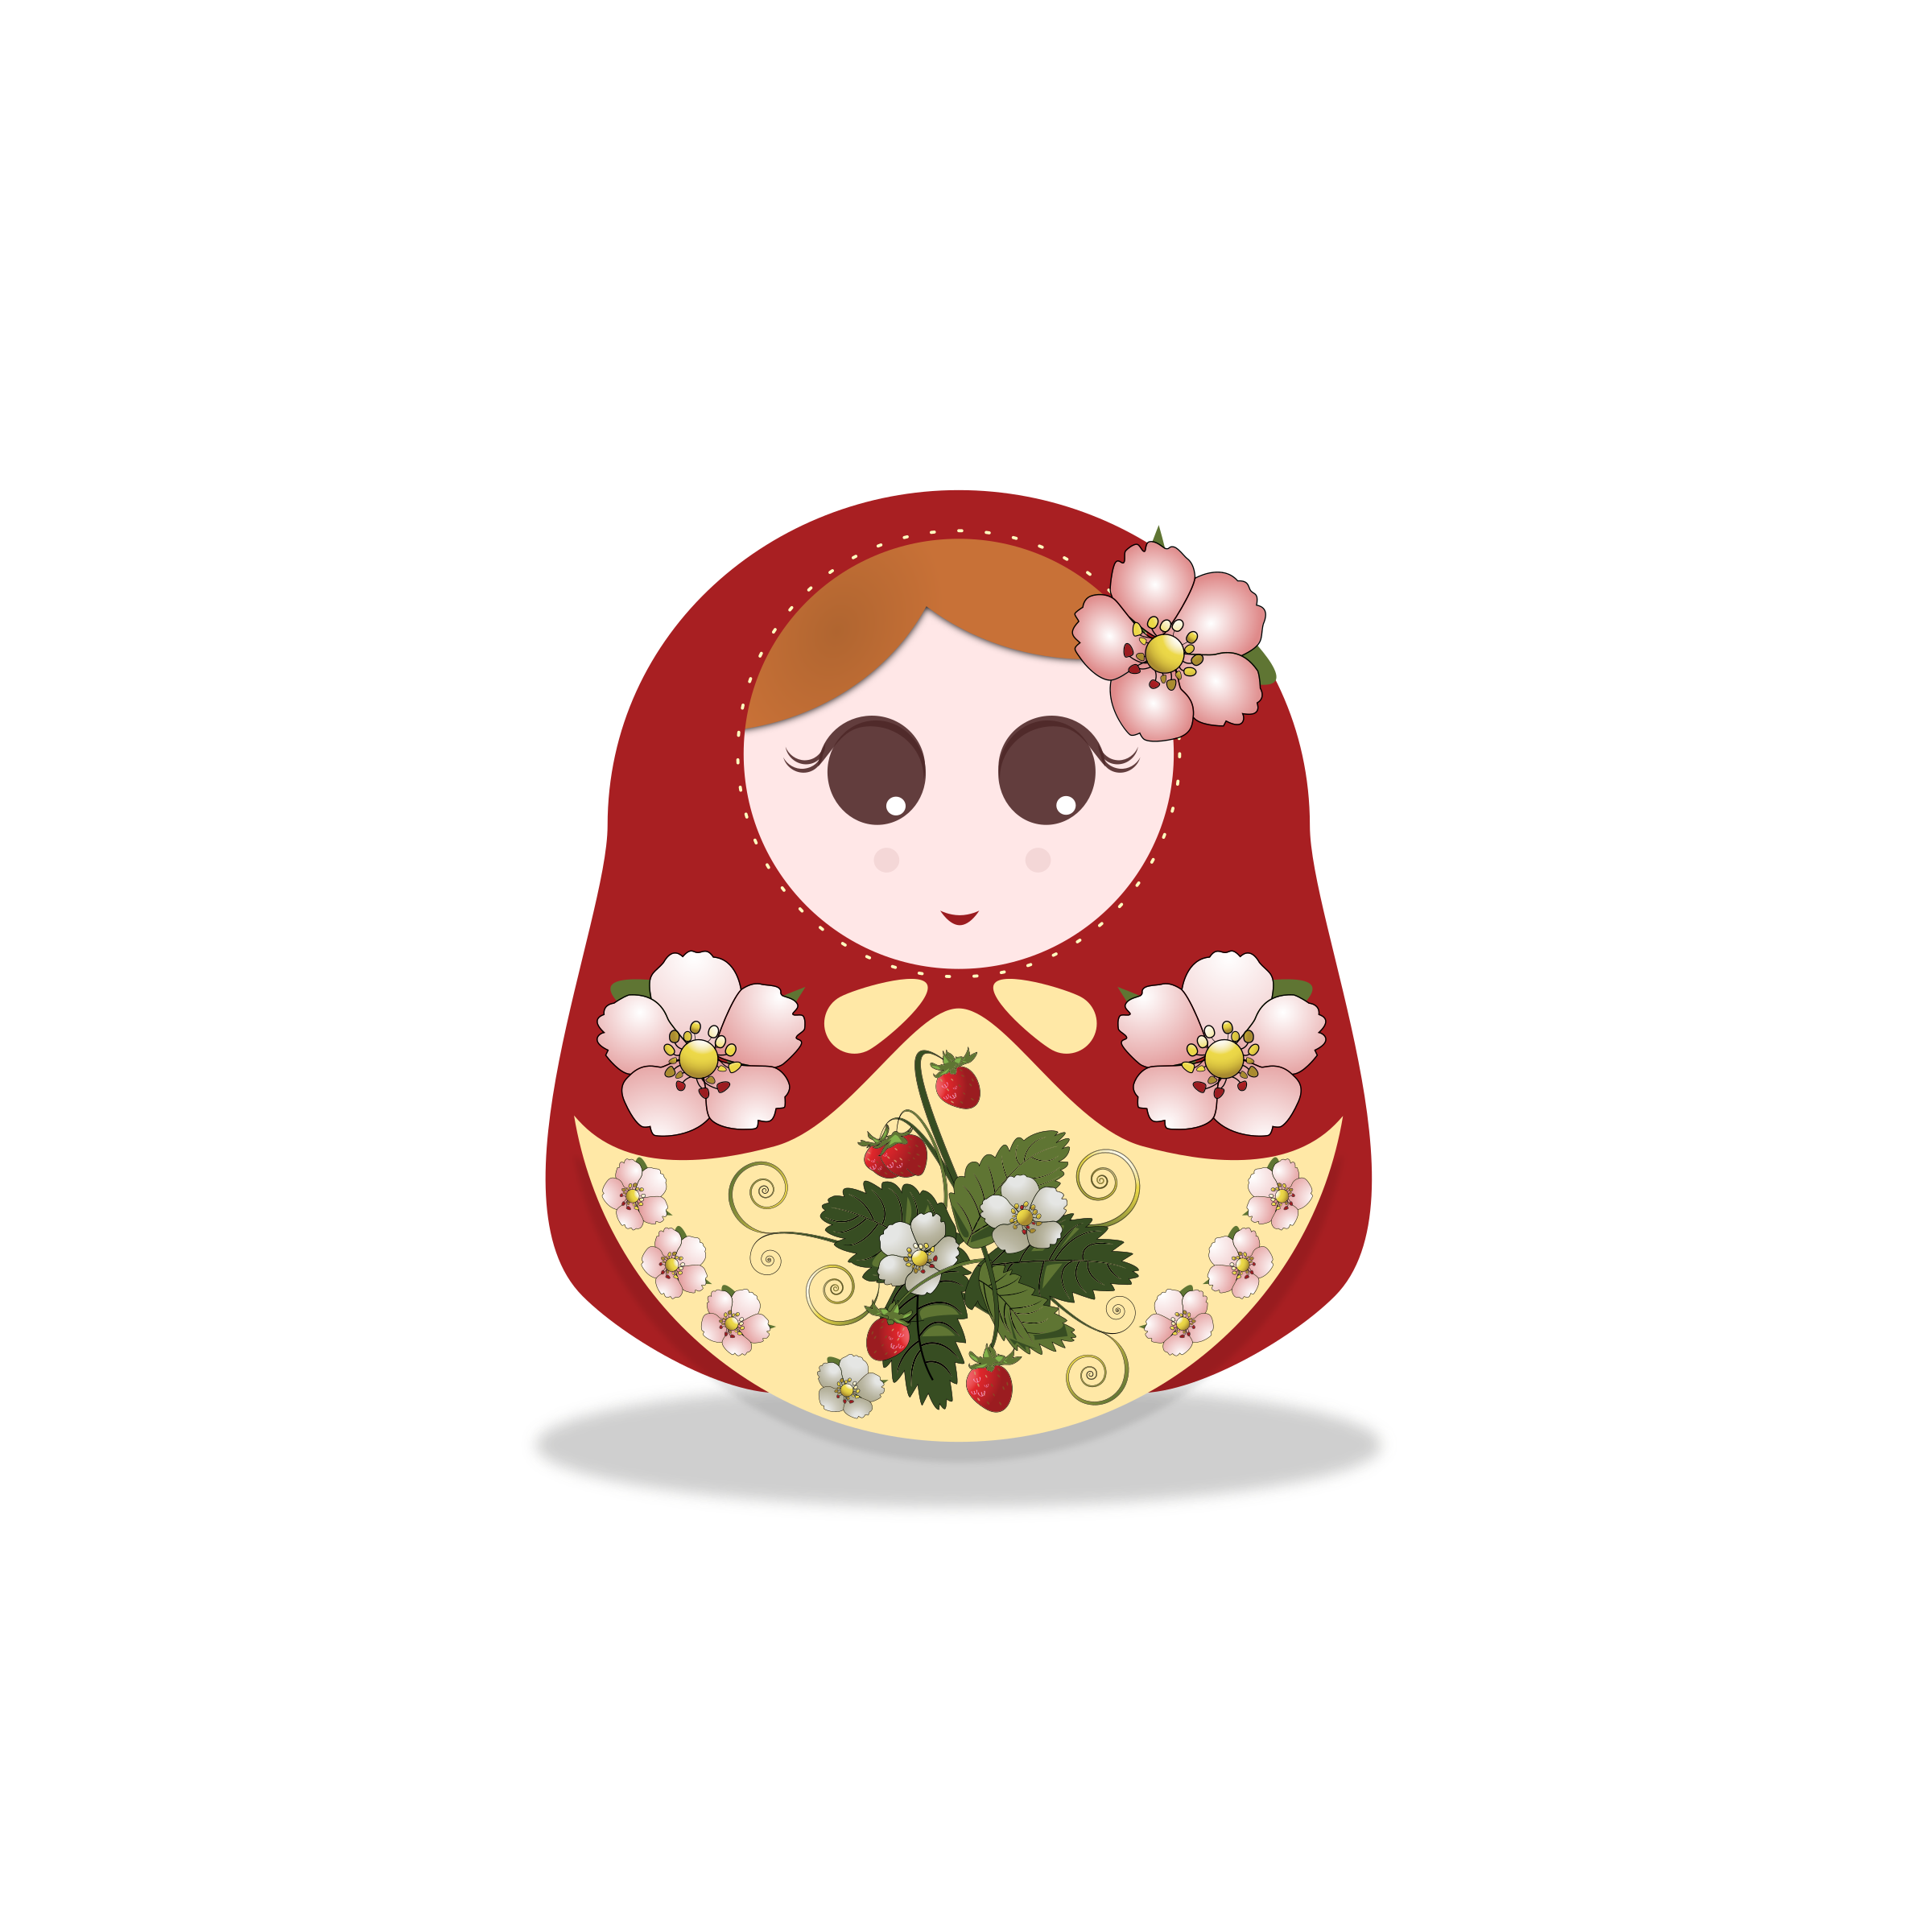 russian doll strawberry by Ana.